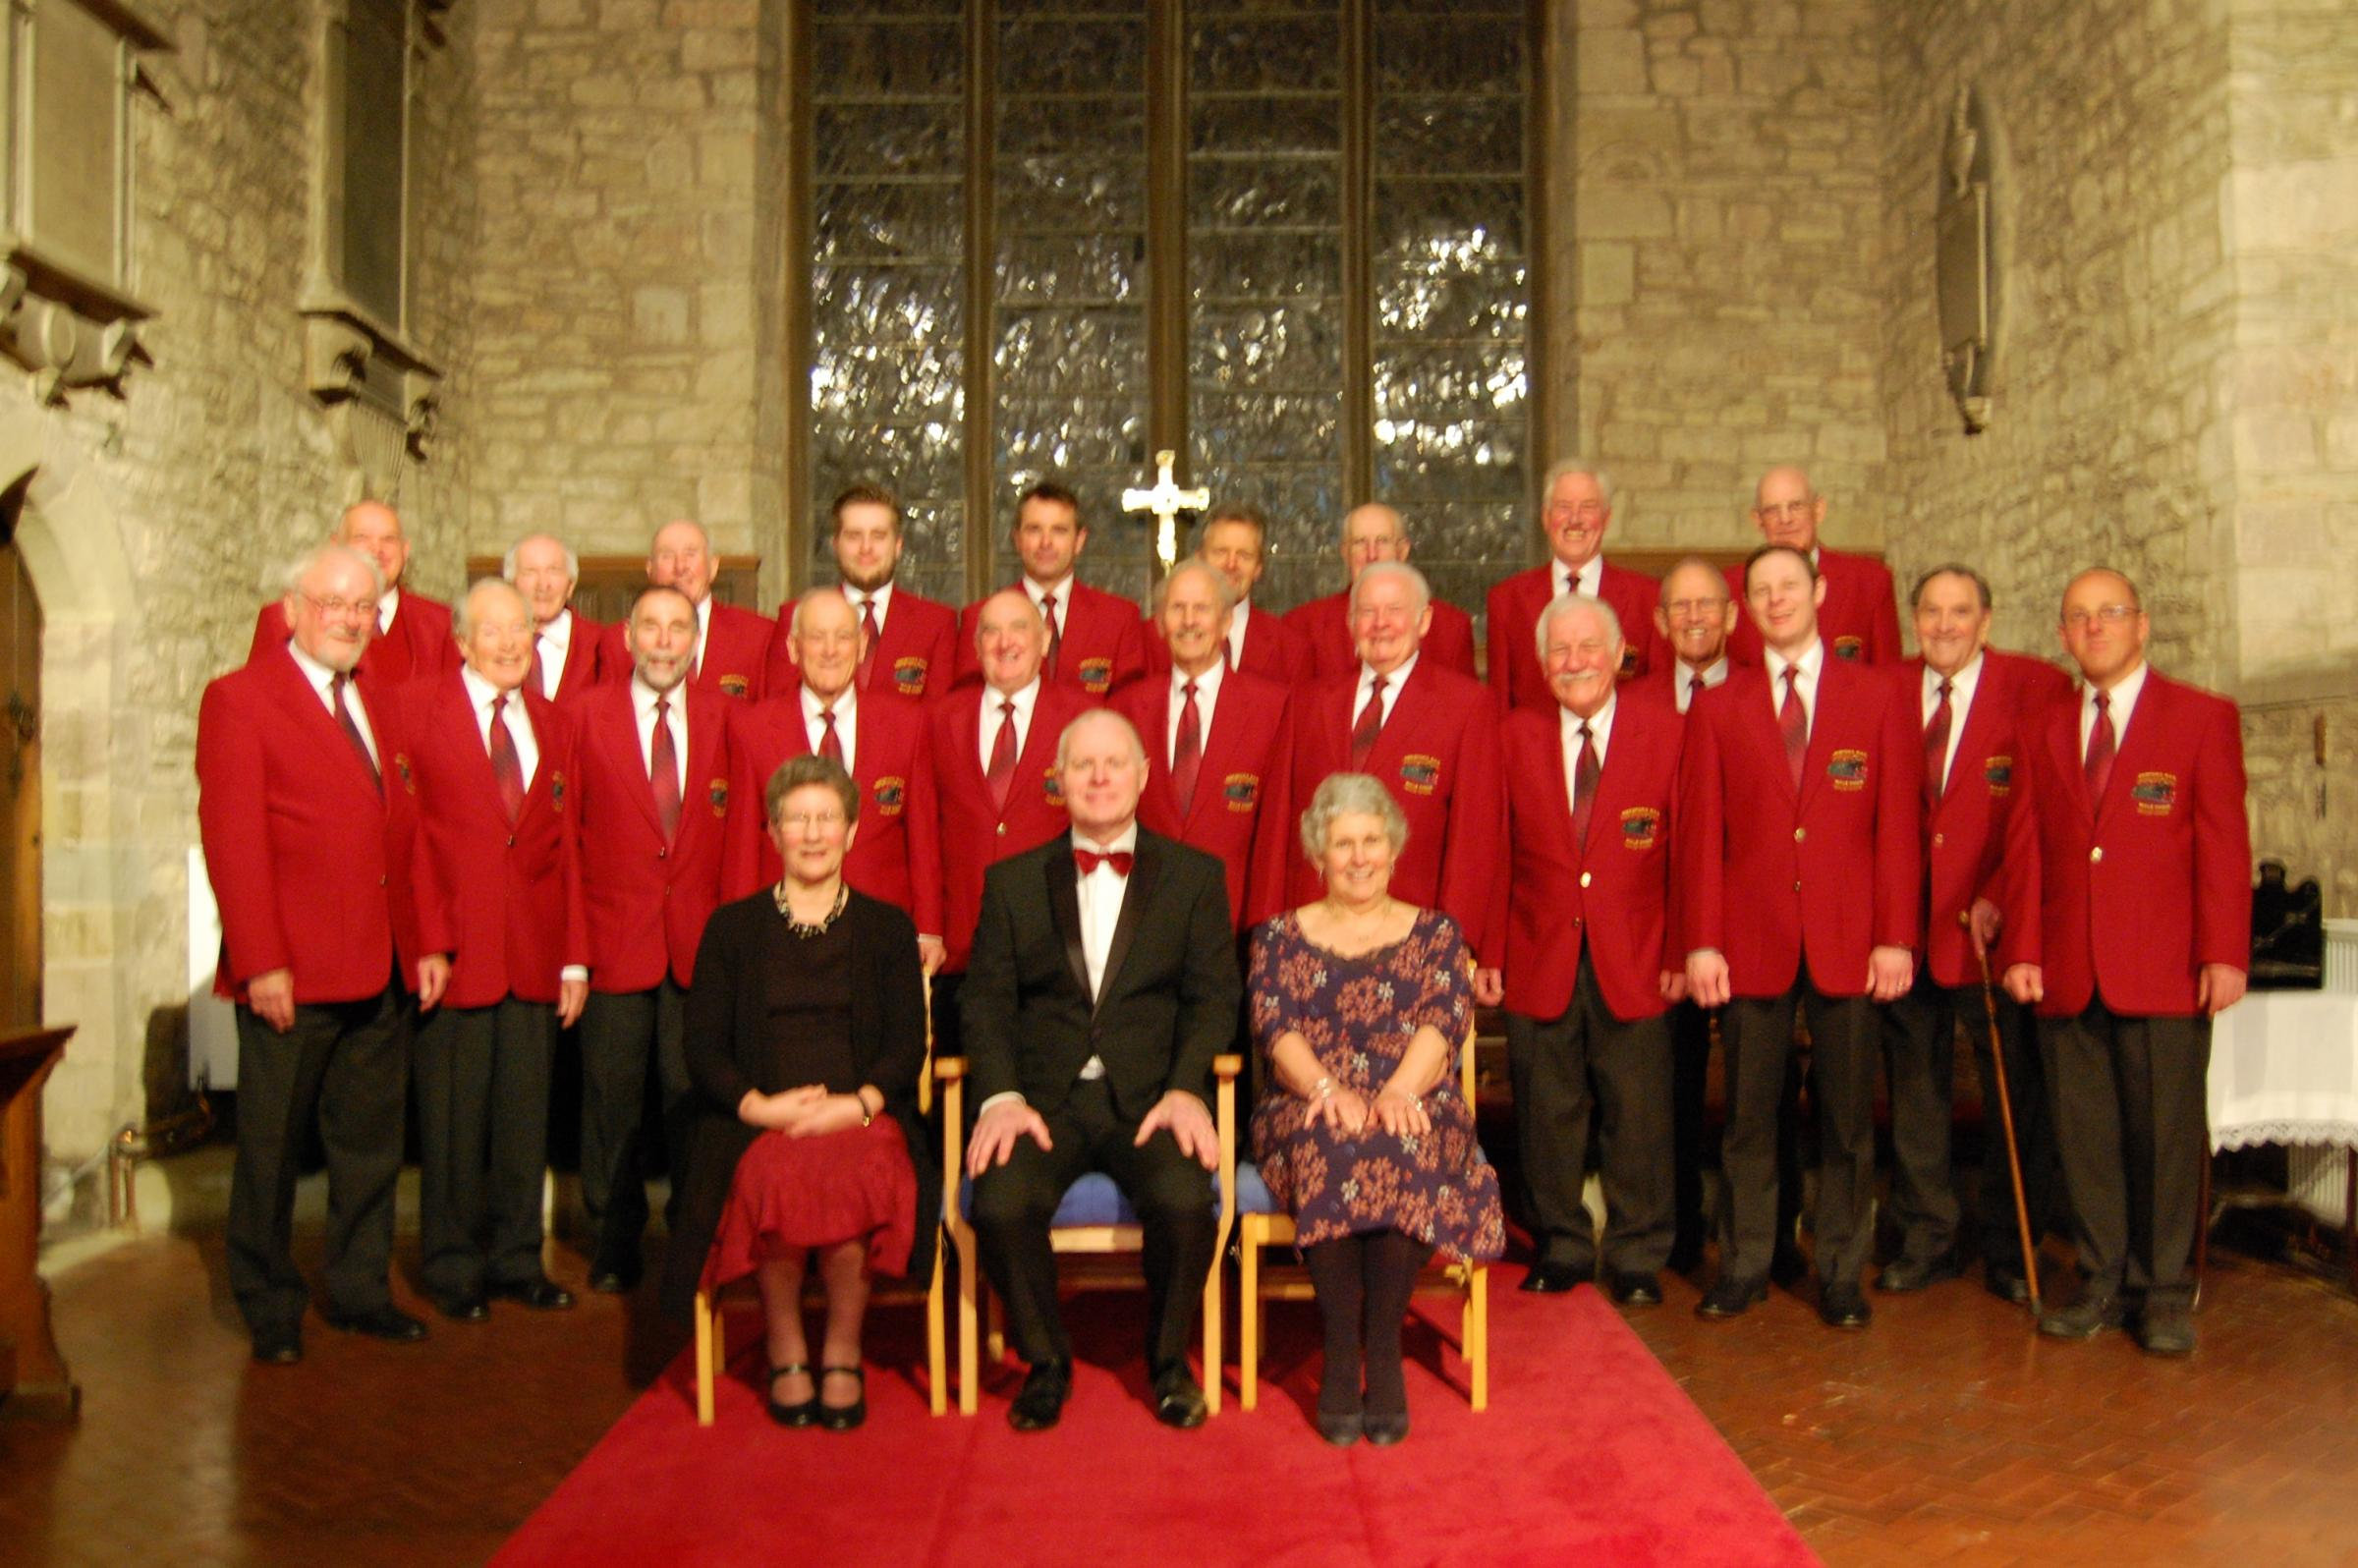 The Hereford Rail Male Voice Choir will give their Annual Concert on Saturday, May 19